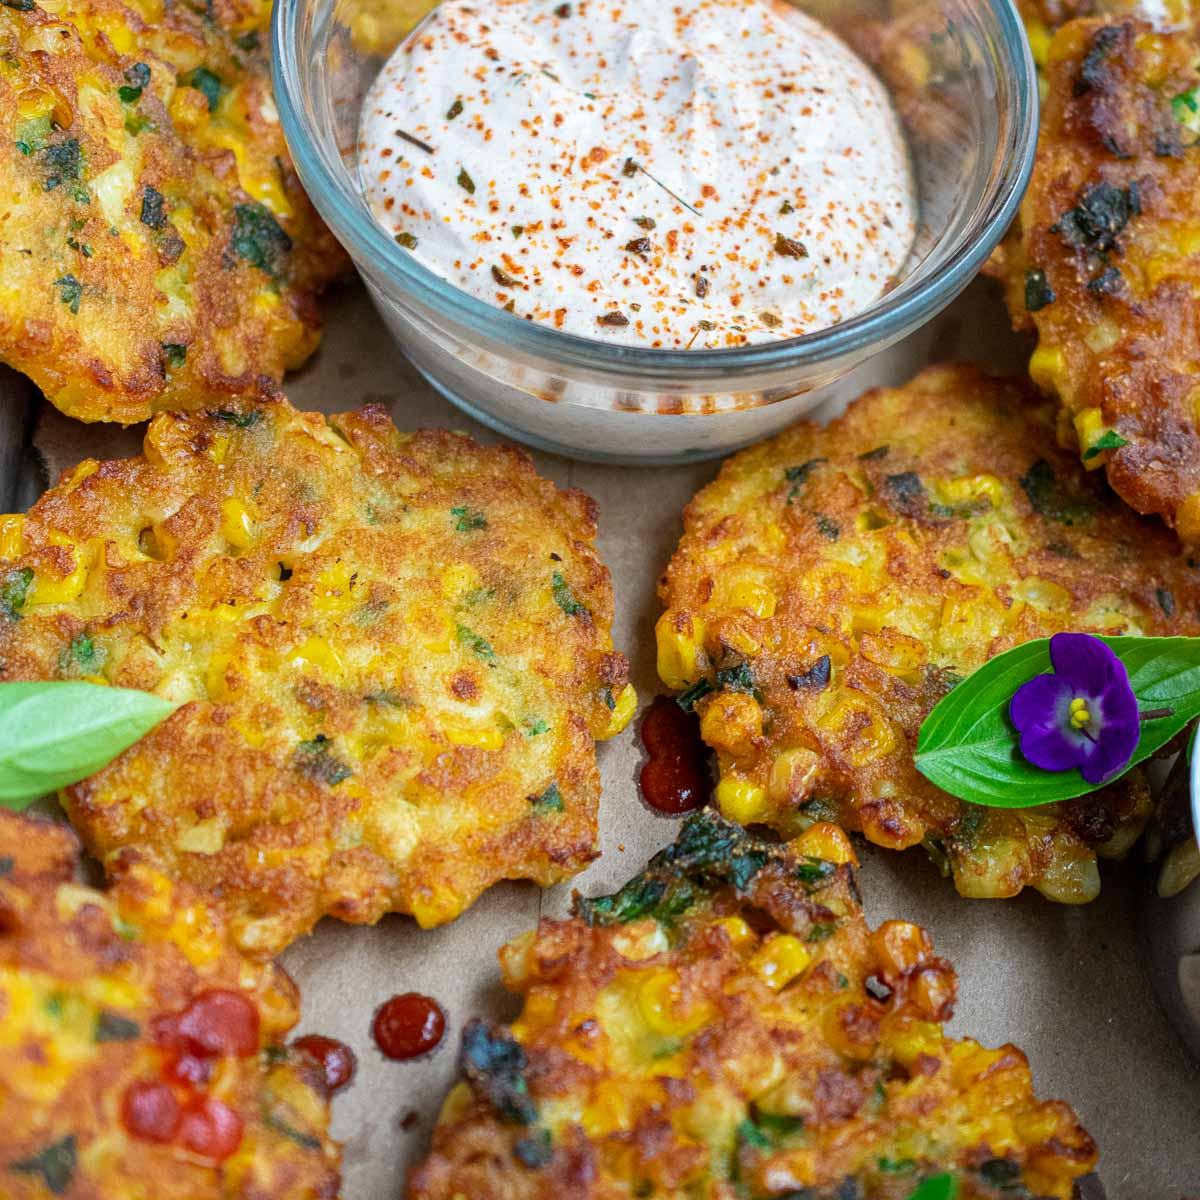 Close up view of fritters.